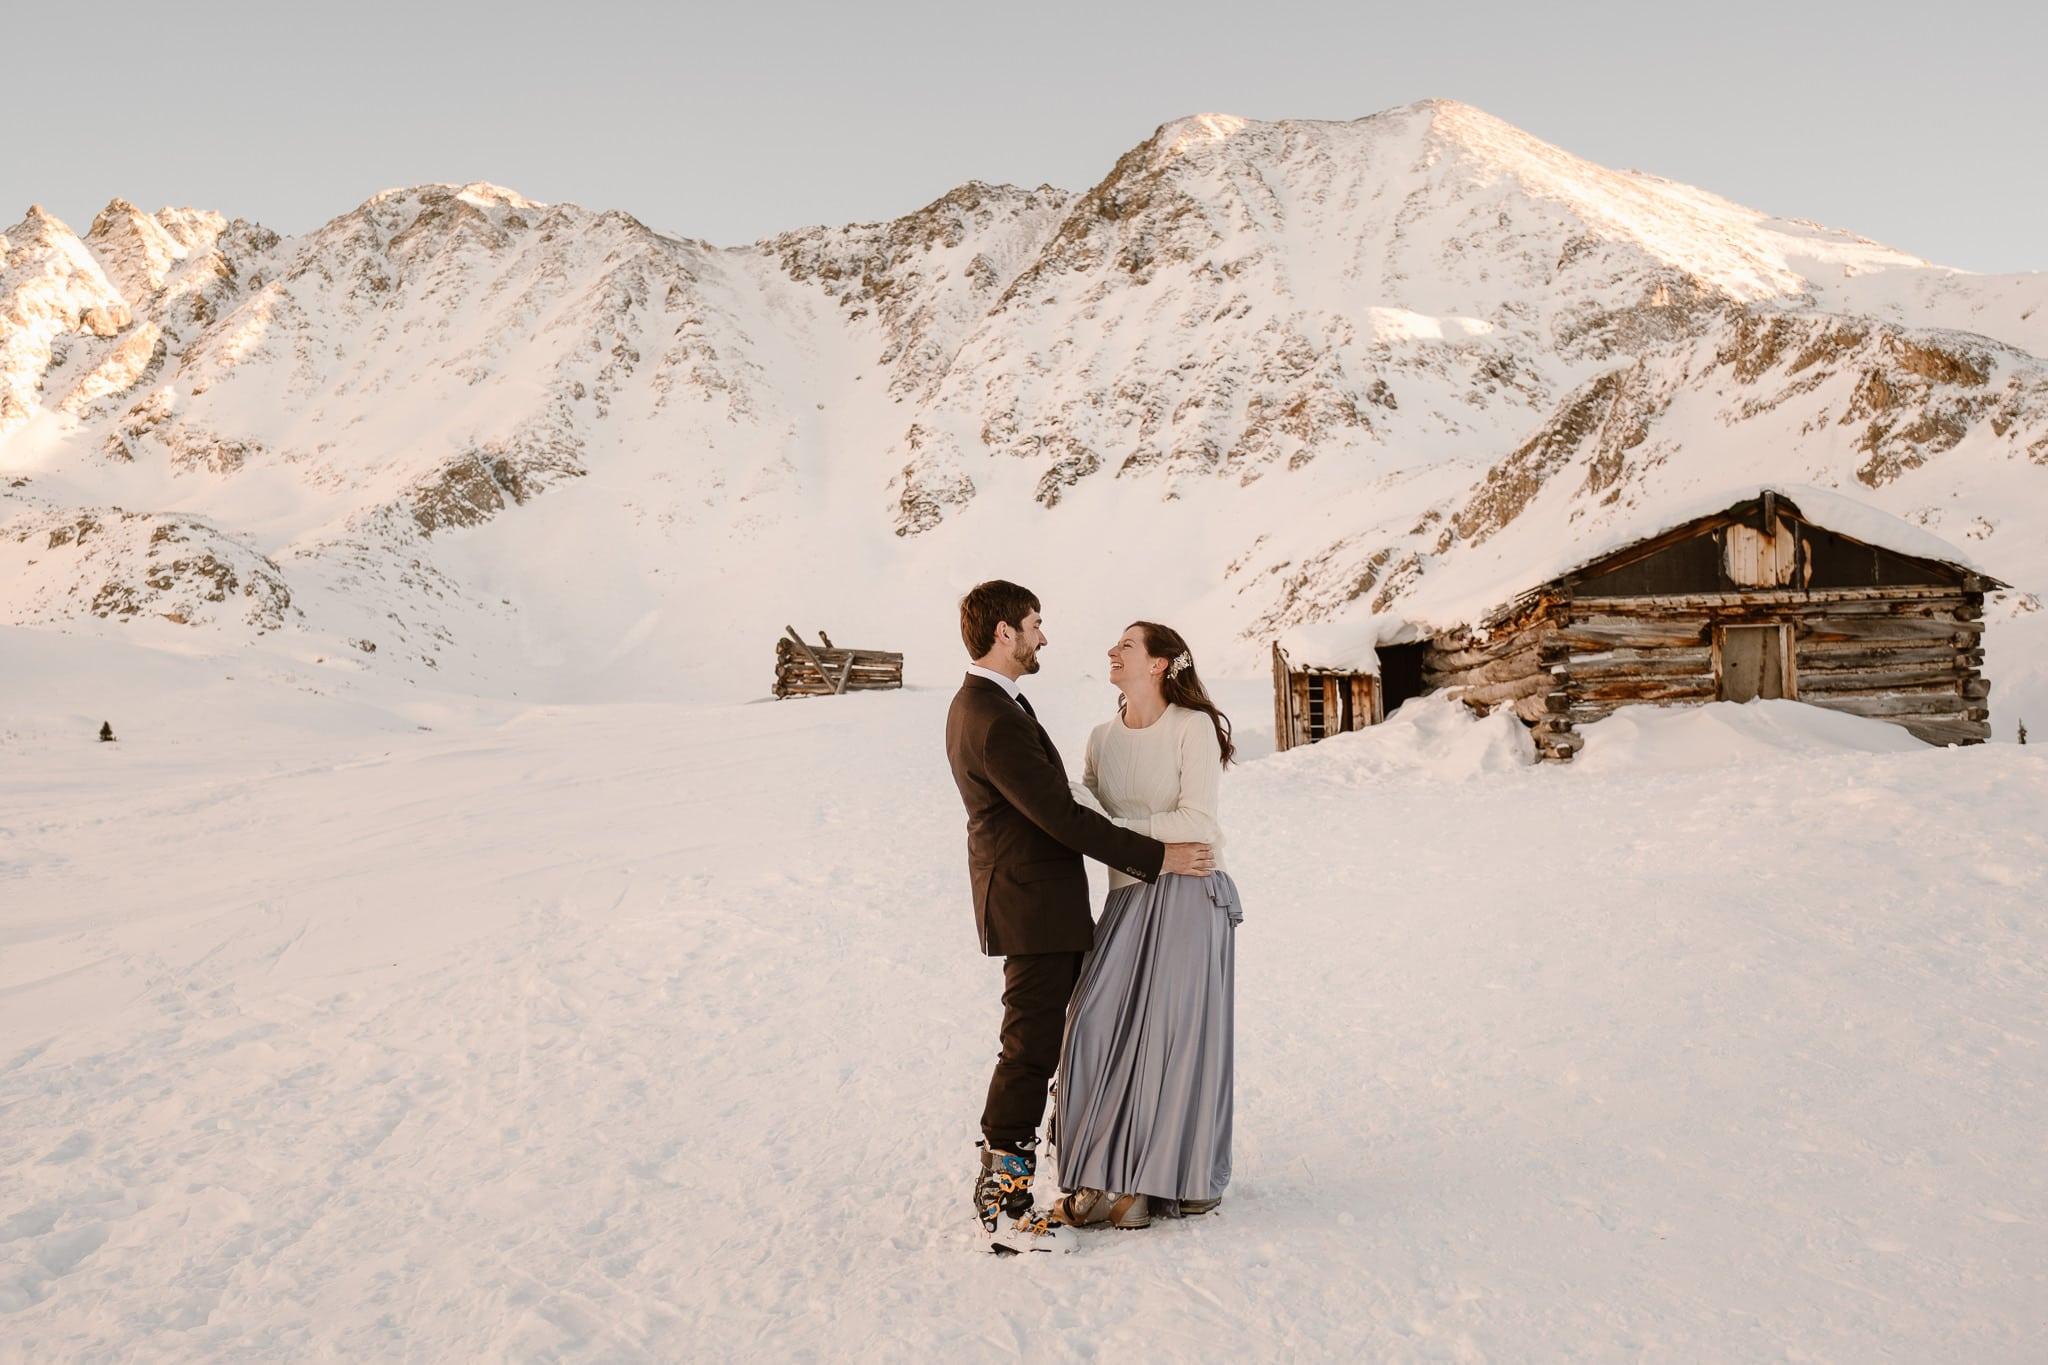 Bride and groom playing at Mayflower Gulch in Colorado, backcountry skiing elopement, snow covered mining cabins